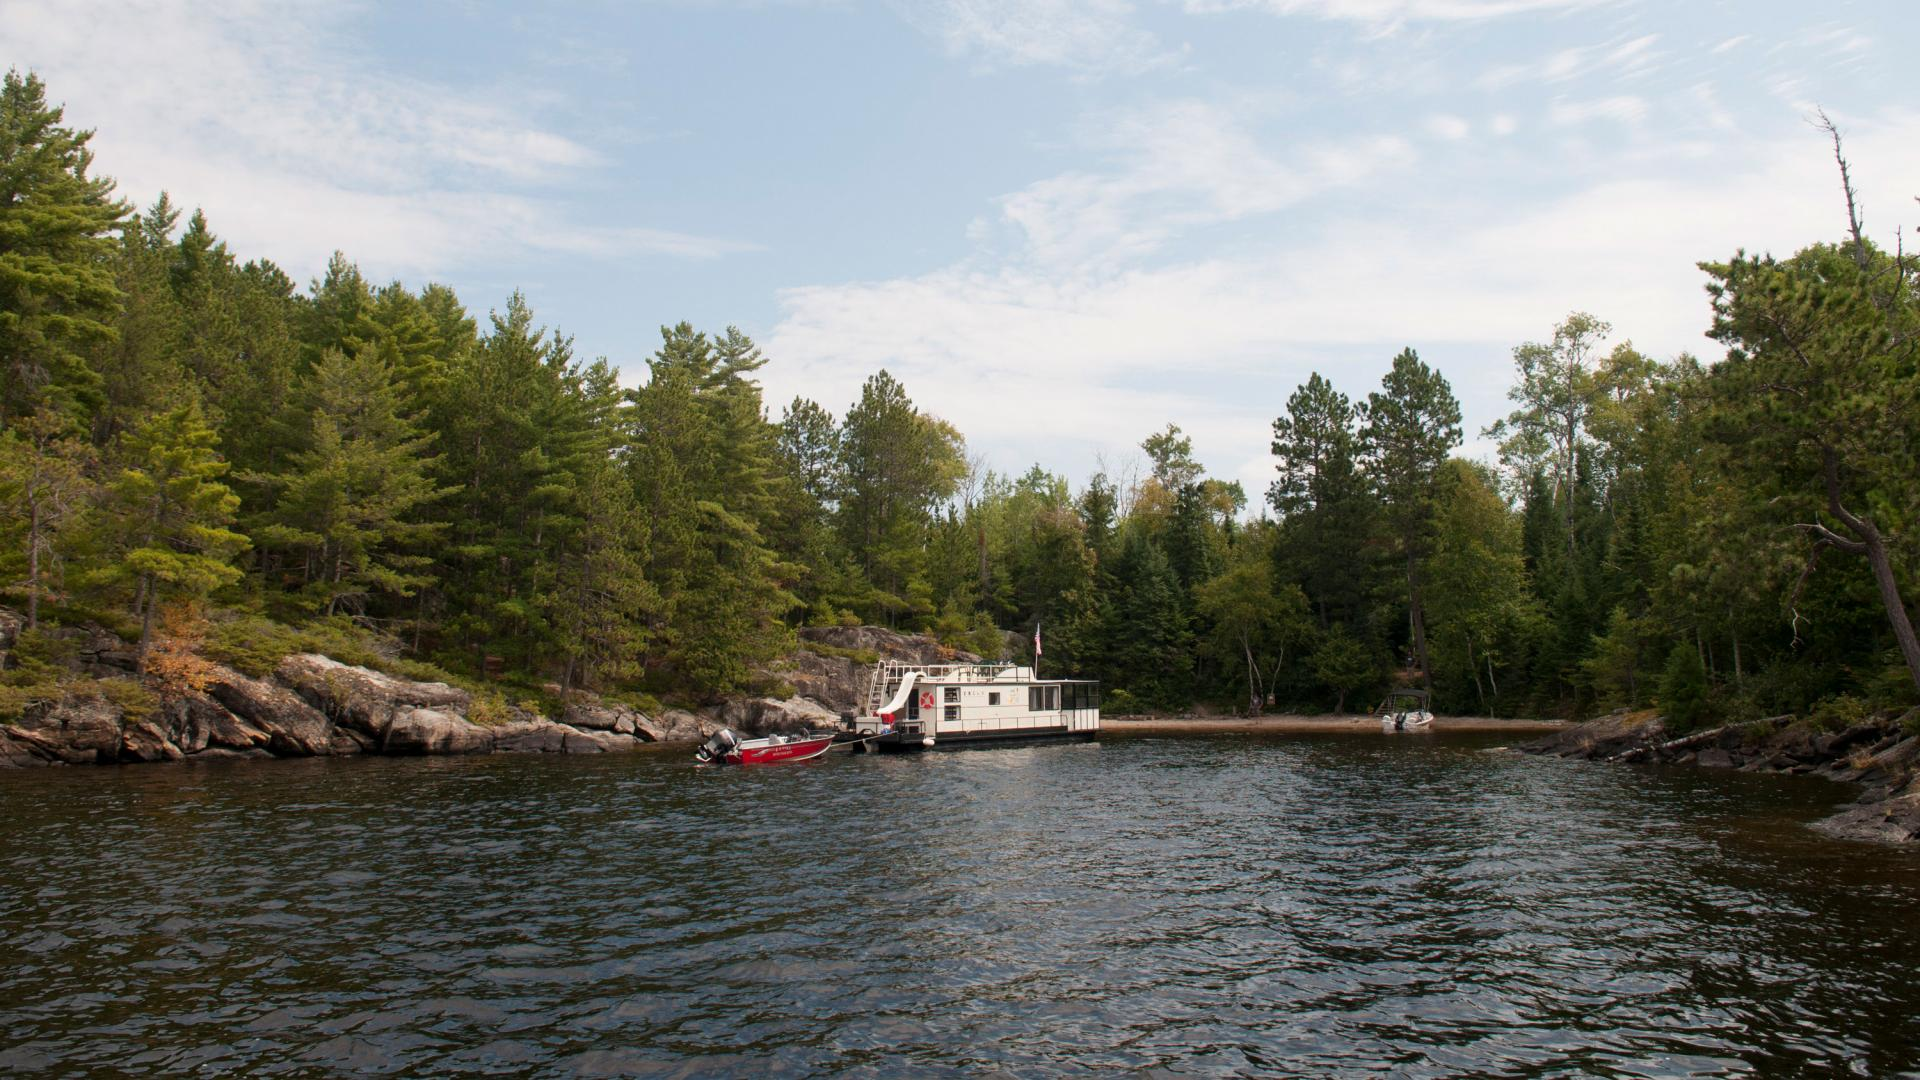 Houseboat in Voyageurs National Park